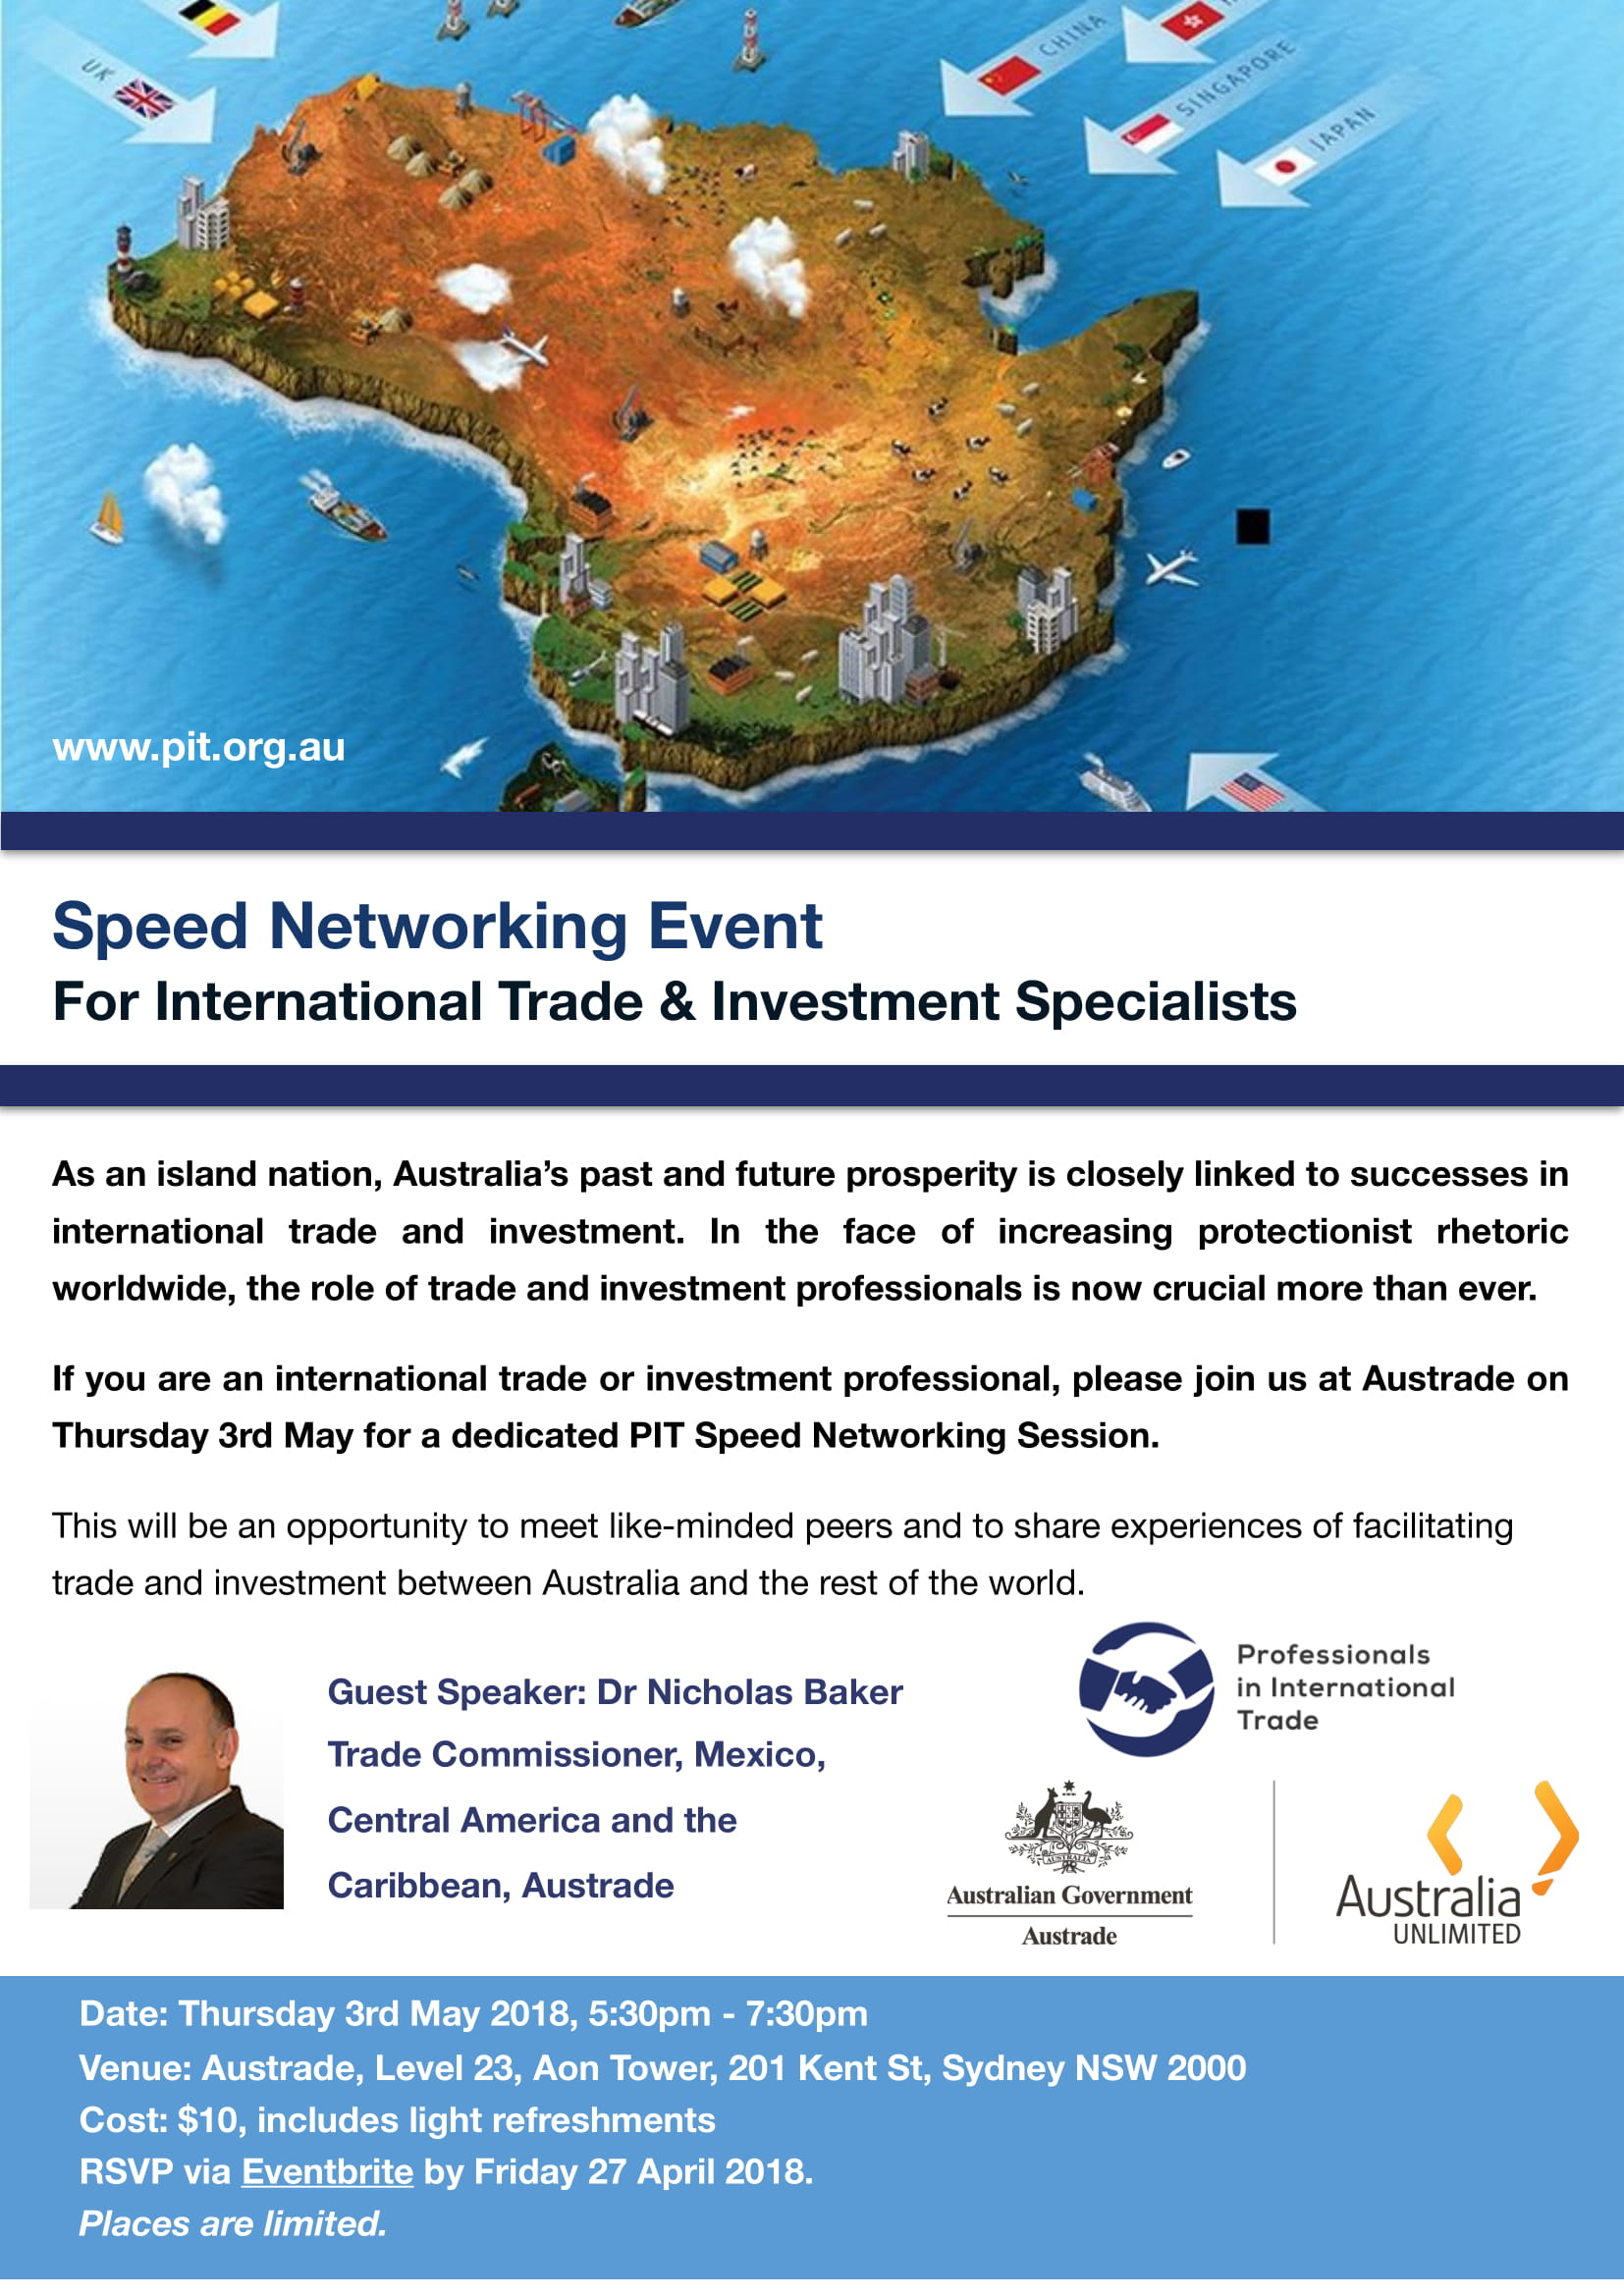 PIT Speed Networking Event - For International Trade & Investment Specialists